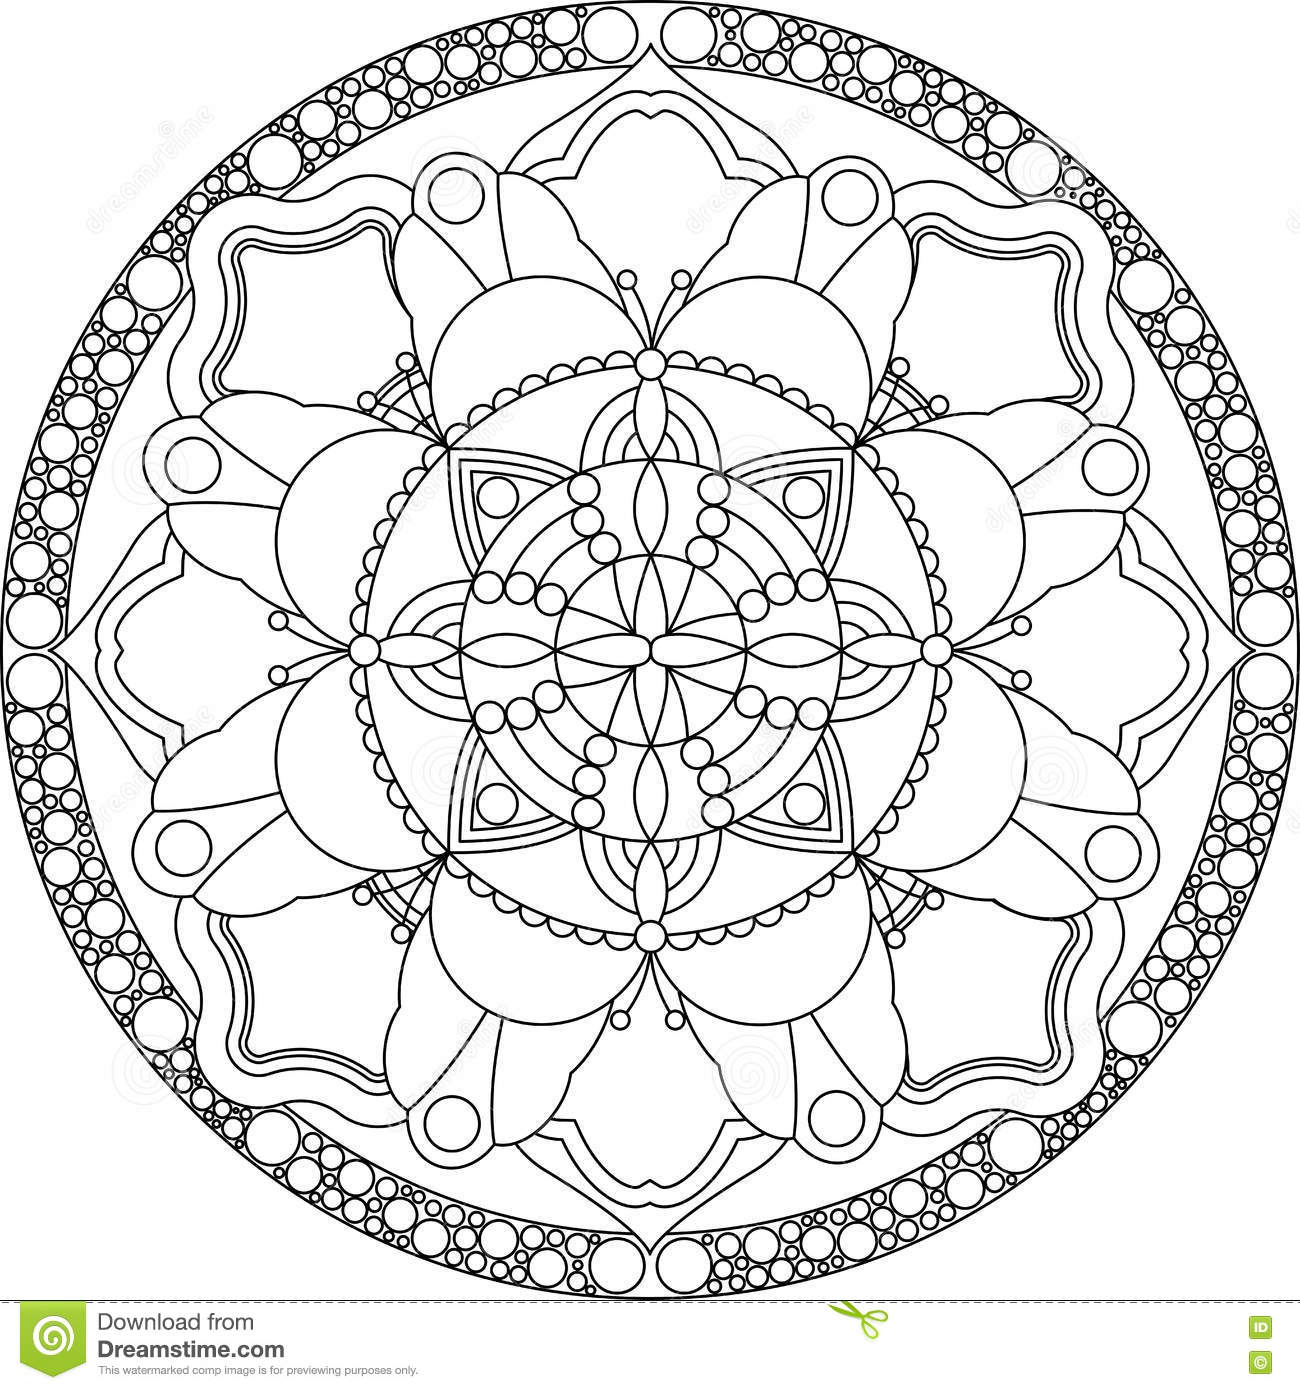 zentangle adult coloring page mandala stock vector illustration of pattern page 79970158. Black Bedroom Furniture Sets. Home Design Ideas